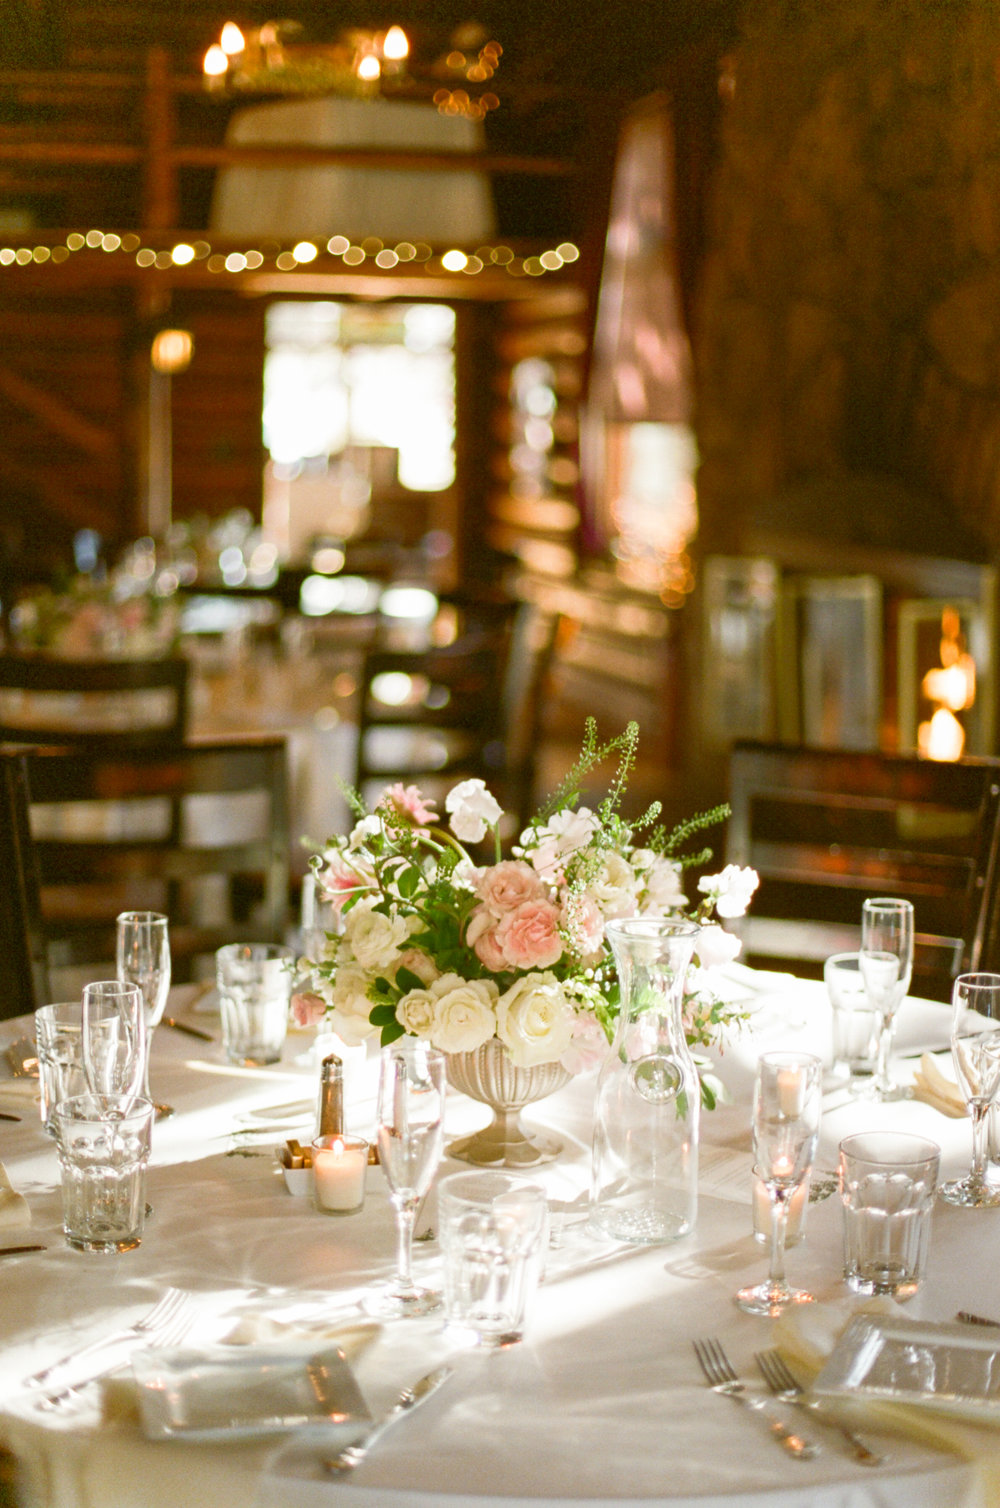 Twin_Owls_Steakhouse-wedding_photographer_Estes_Park_Lisa_ODwyer-503.jpg